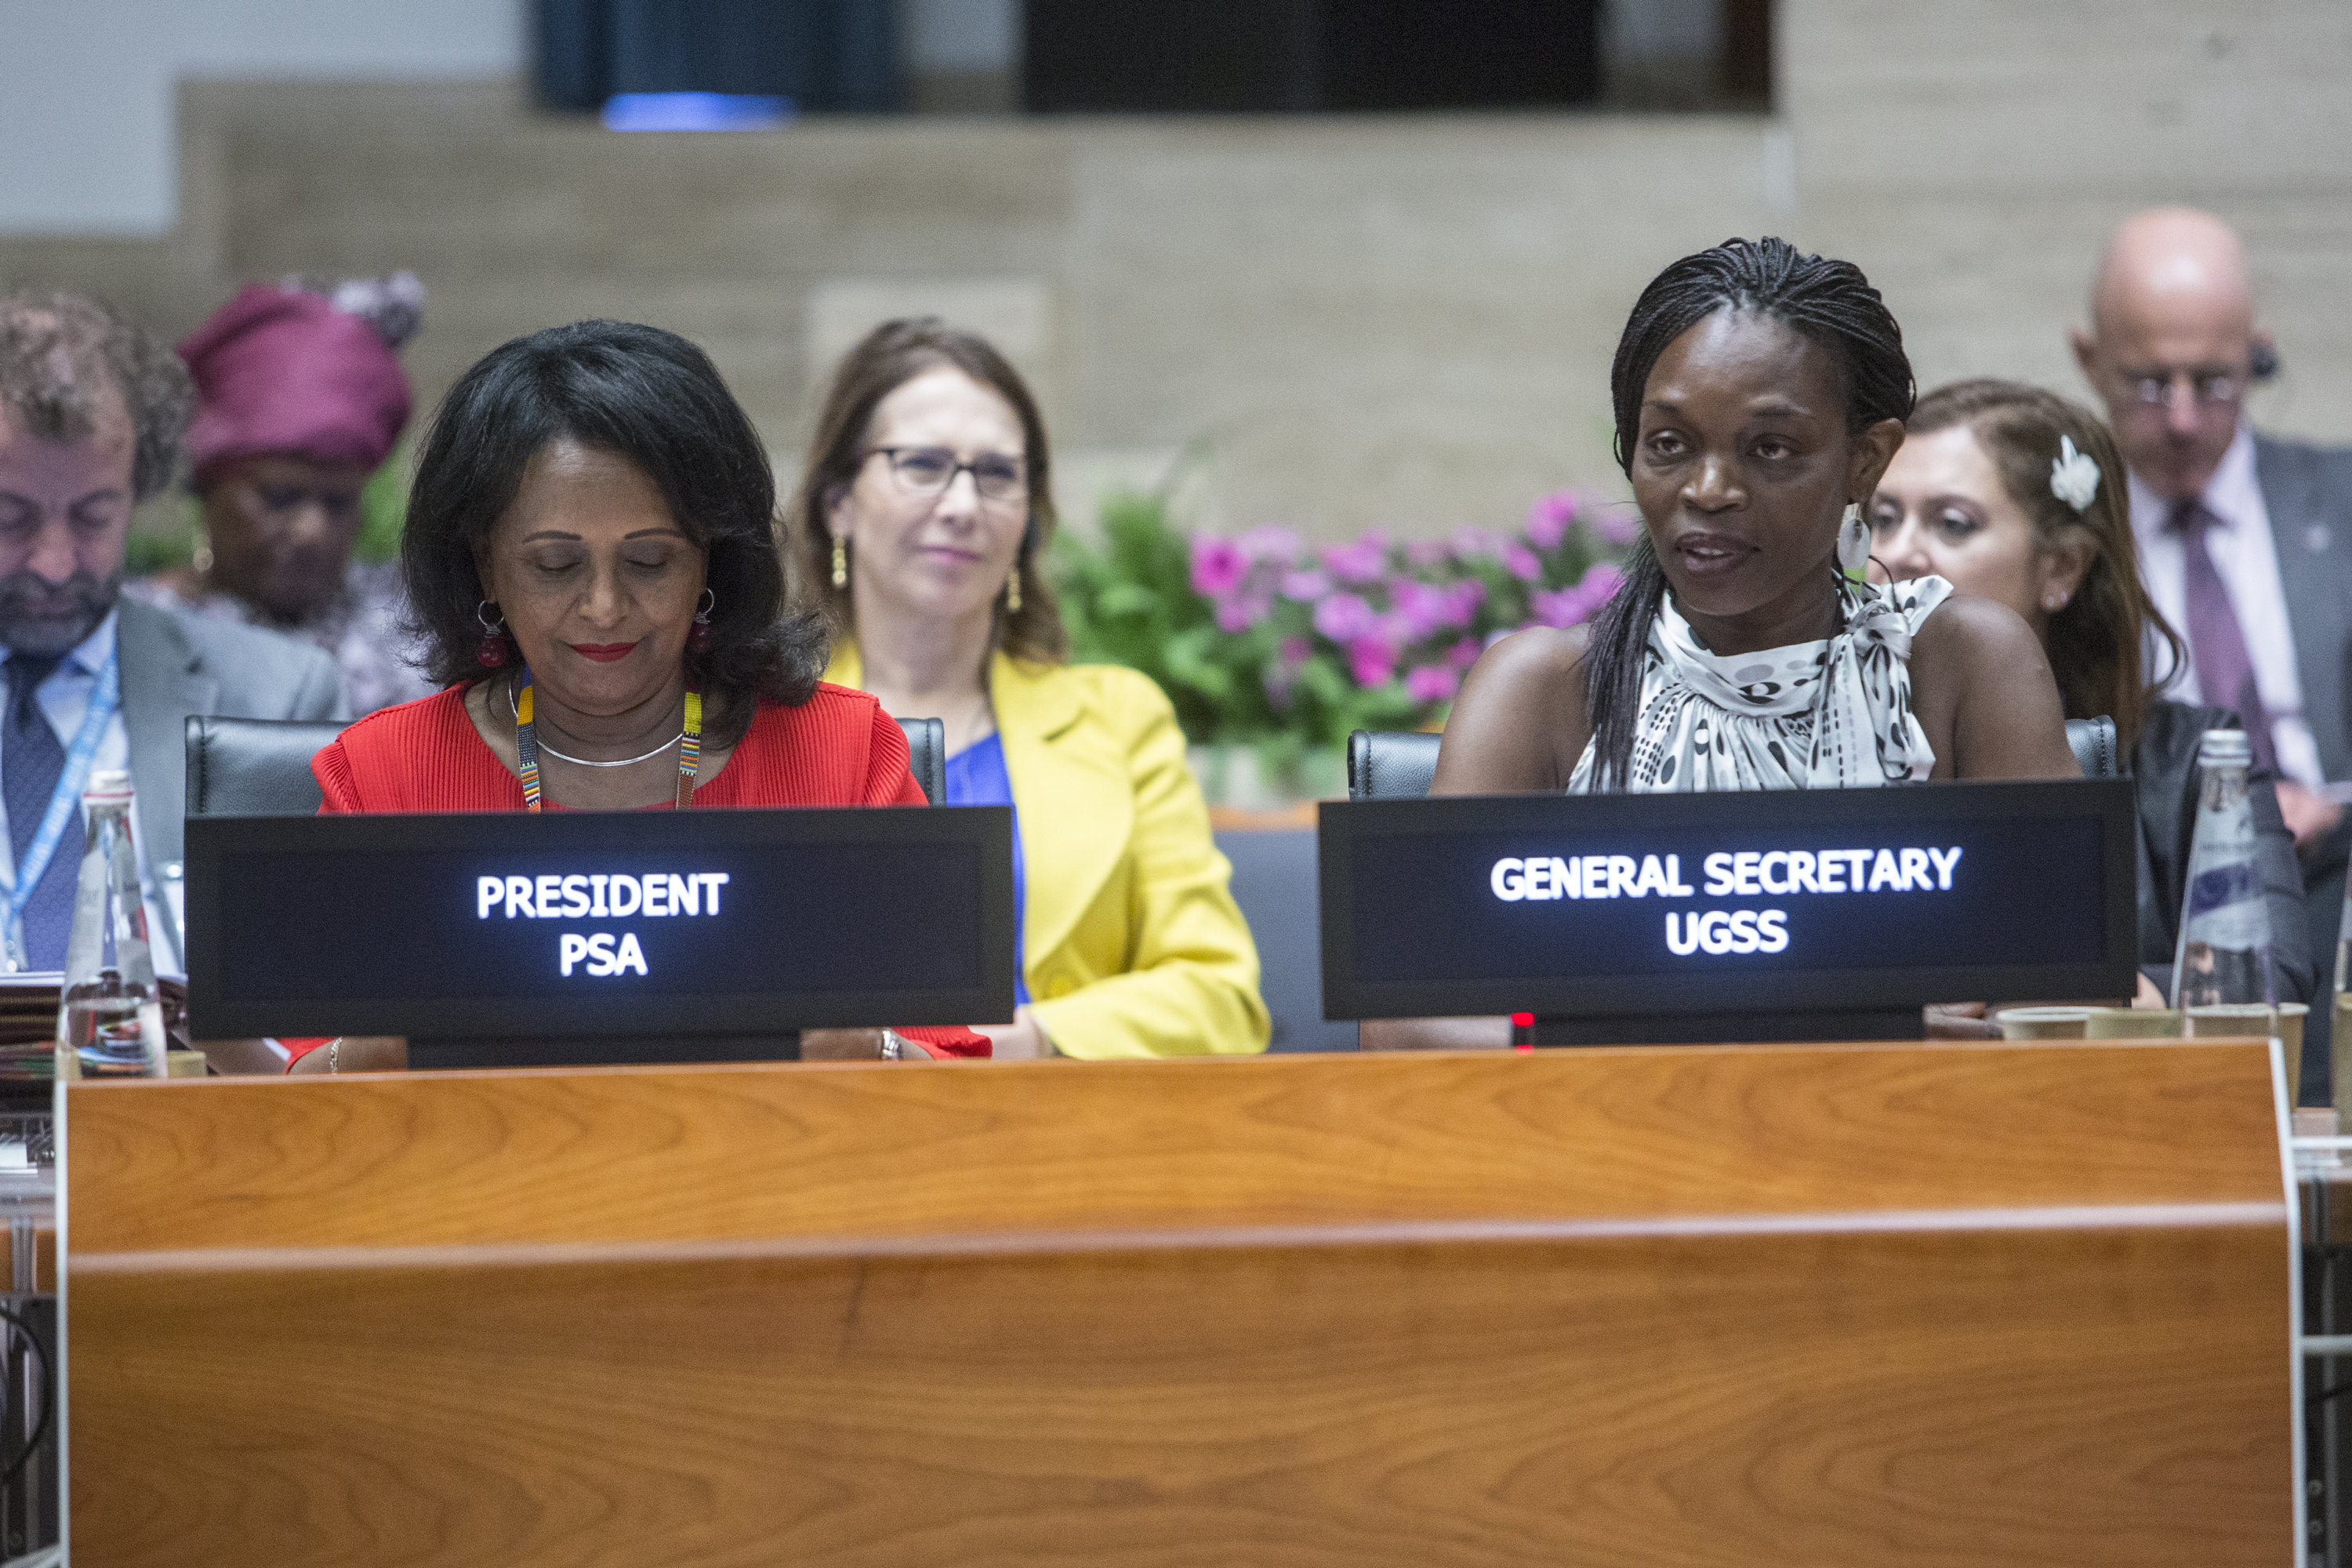 Left to right: The President of the WFP Professional Staff Association (PSA), Ms Ariam Abraha, and the General Secretary of the Union of General Service Staff of FAO and WFP (UGSS), Ms Susan Murray, addressing the Board. Photo: WFP/Giulio Napolitano